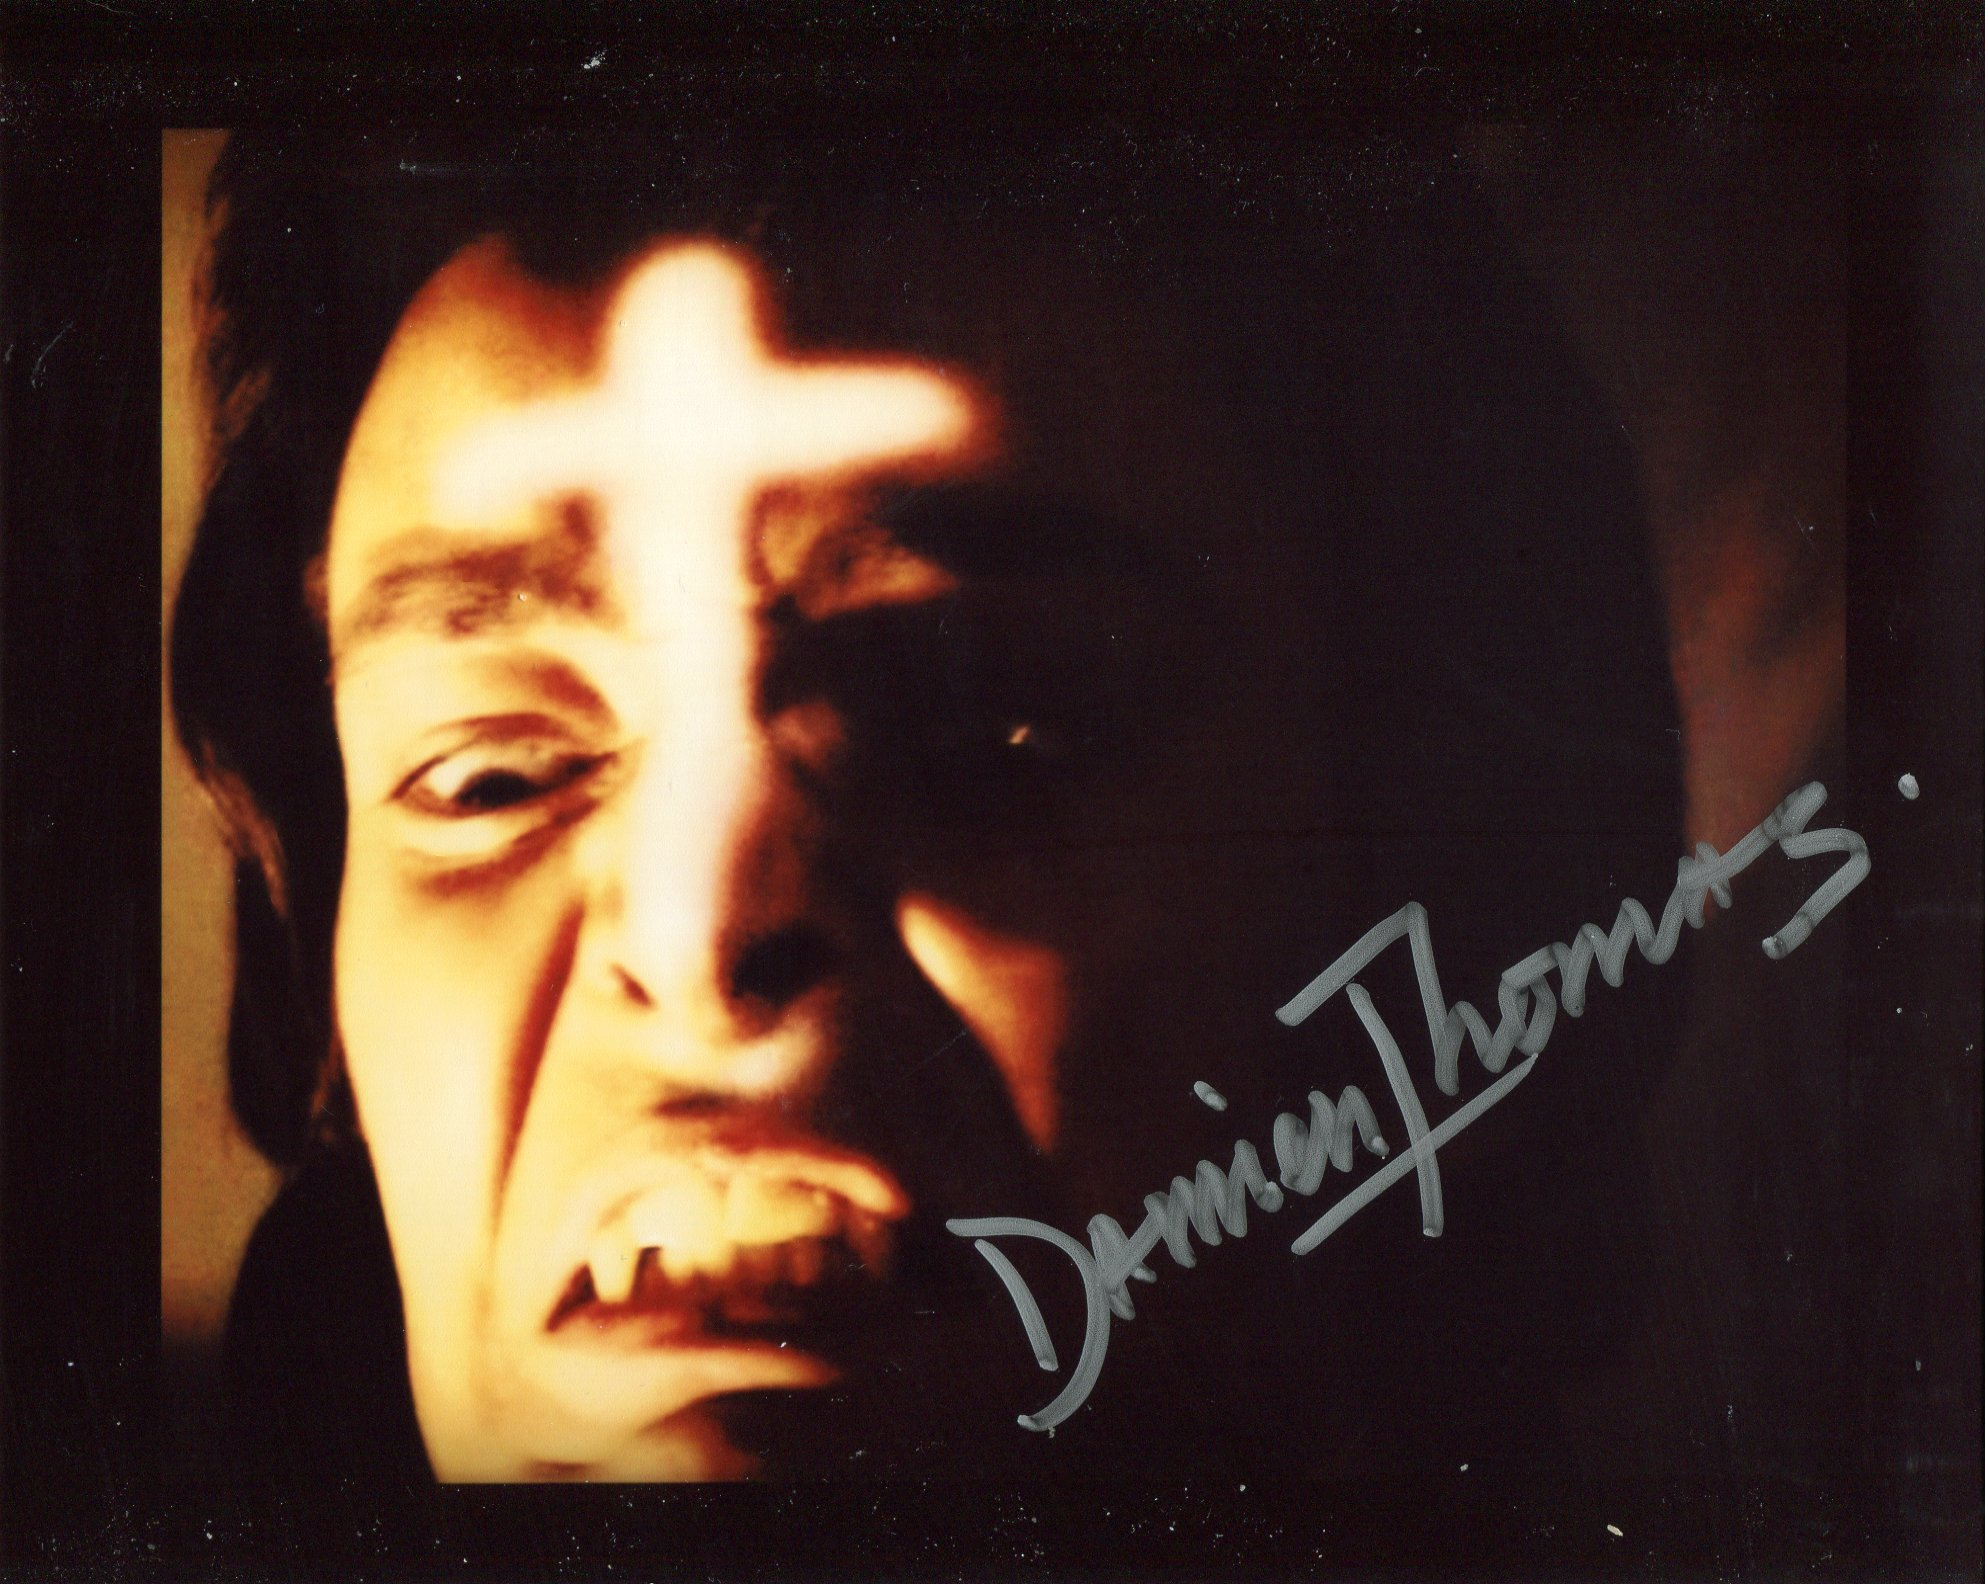 Twins of Evil horror movie photo signed by actor Damien Thomas. Good condition. All autographs